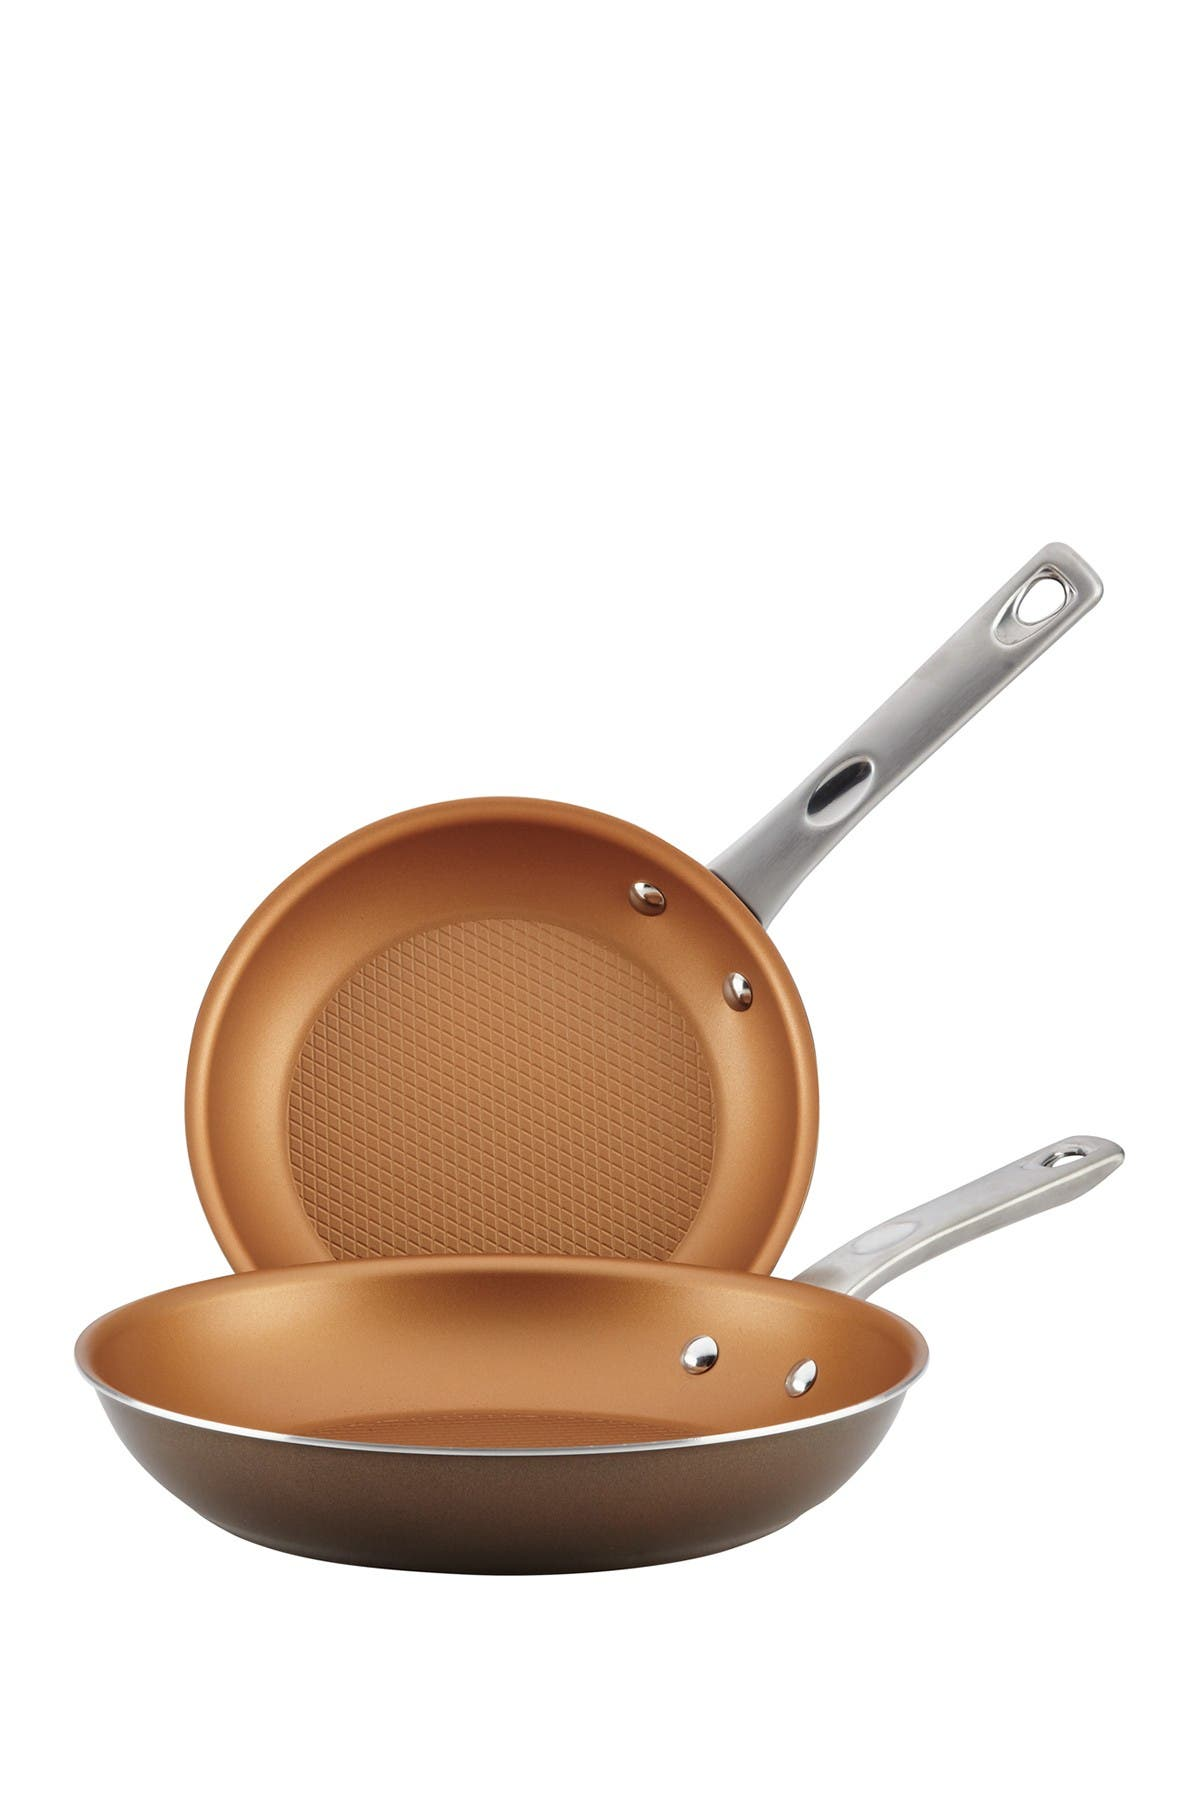 """Image of AYESHA Collection Cookware 9.25"""" & 11.5"""" Open Skillet - Set of 2 - Brown Sugar"""